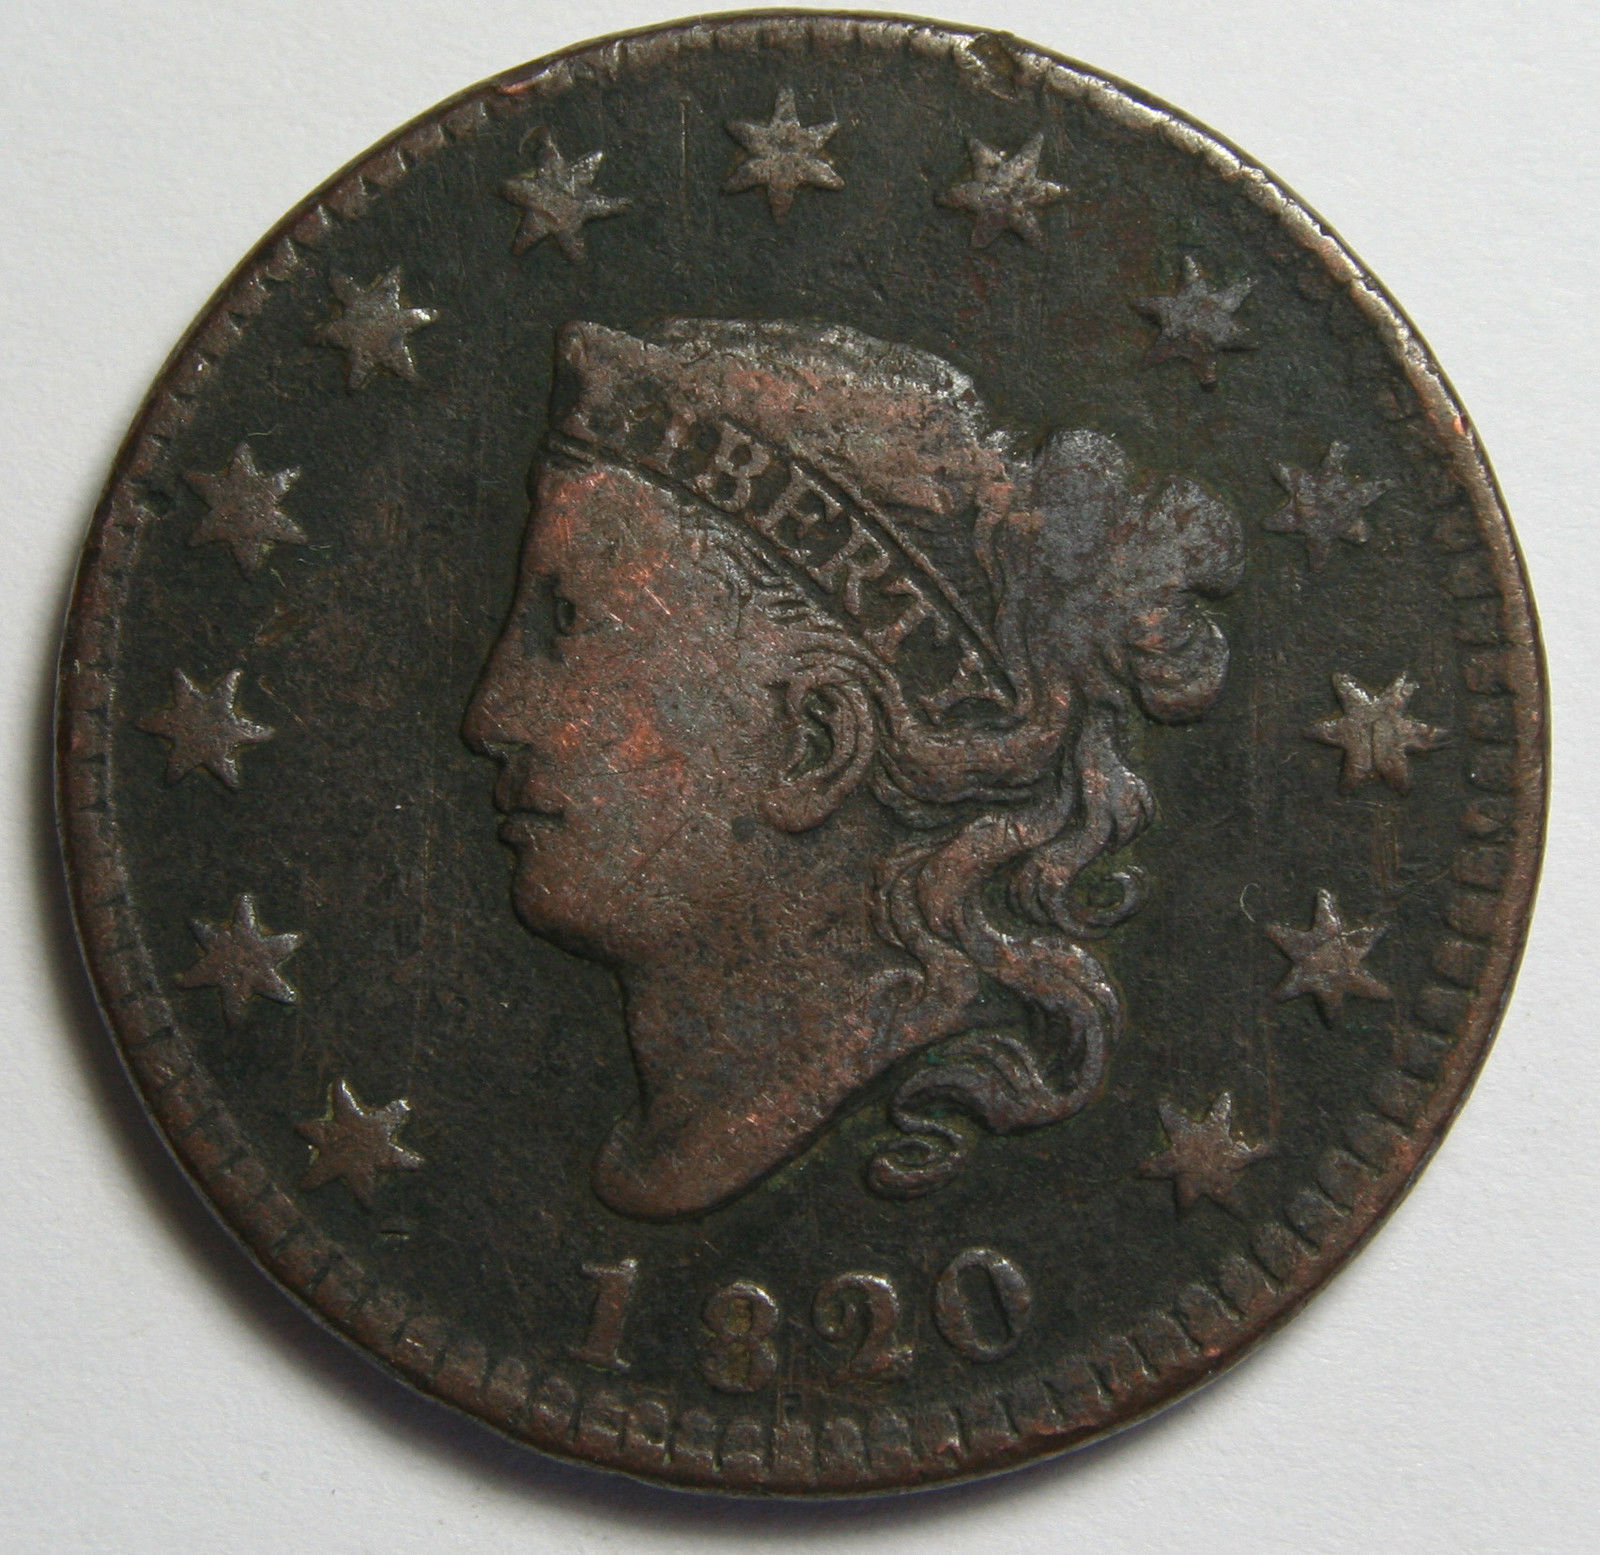 1920 Large Cent Liberty Coronet Head Coin Lot # MZ 4083